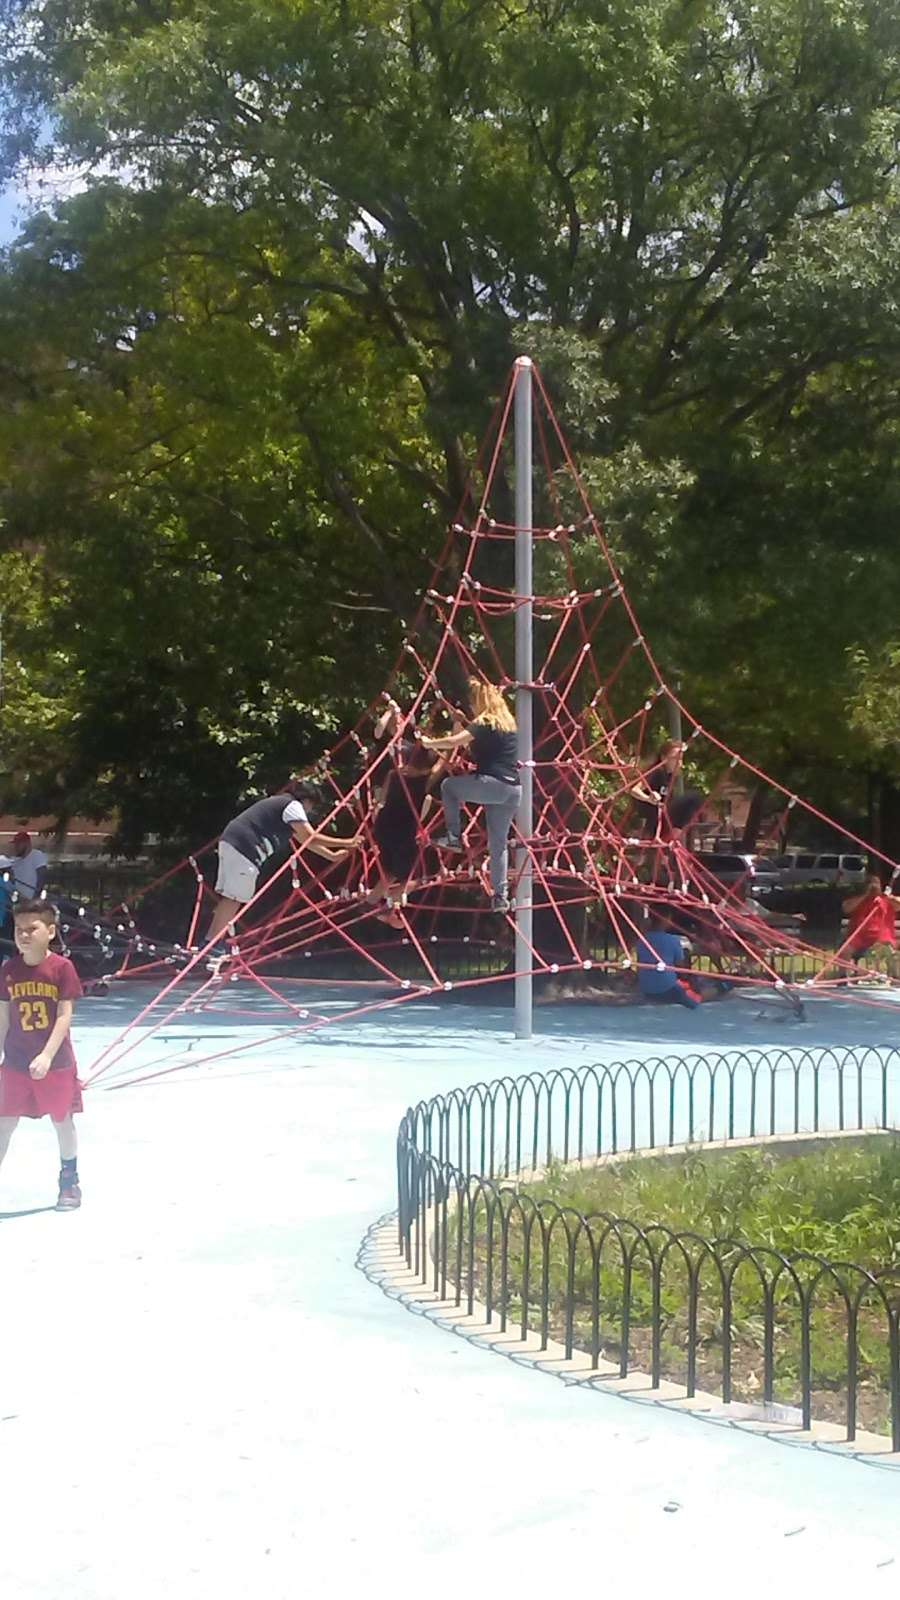 Soundview Park Outdoor Fitness Equipment - gym    Photo 3 of 10   Address: Lafayette Ave, Bronx, NY 10473, USA   Phone: (212) 639-9675